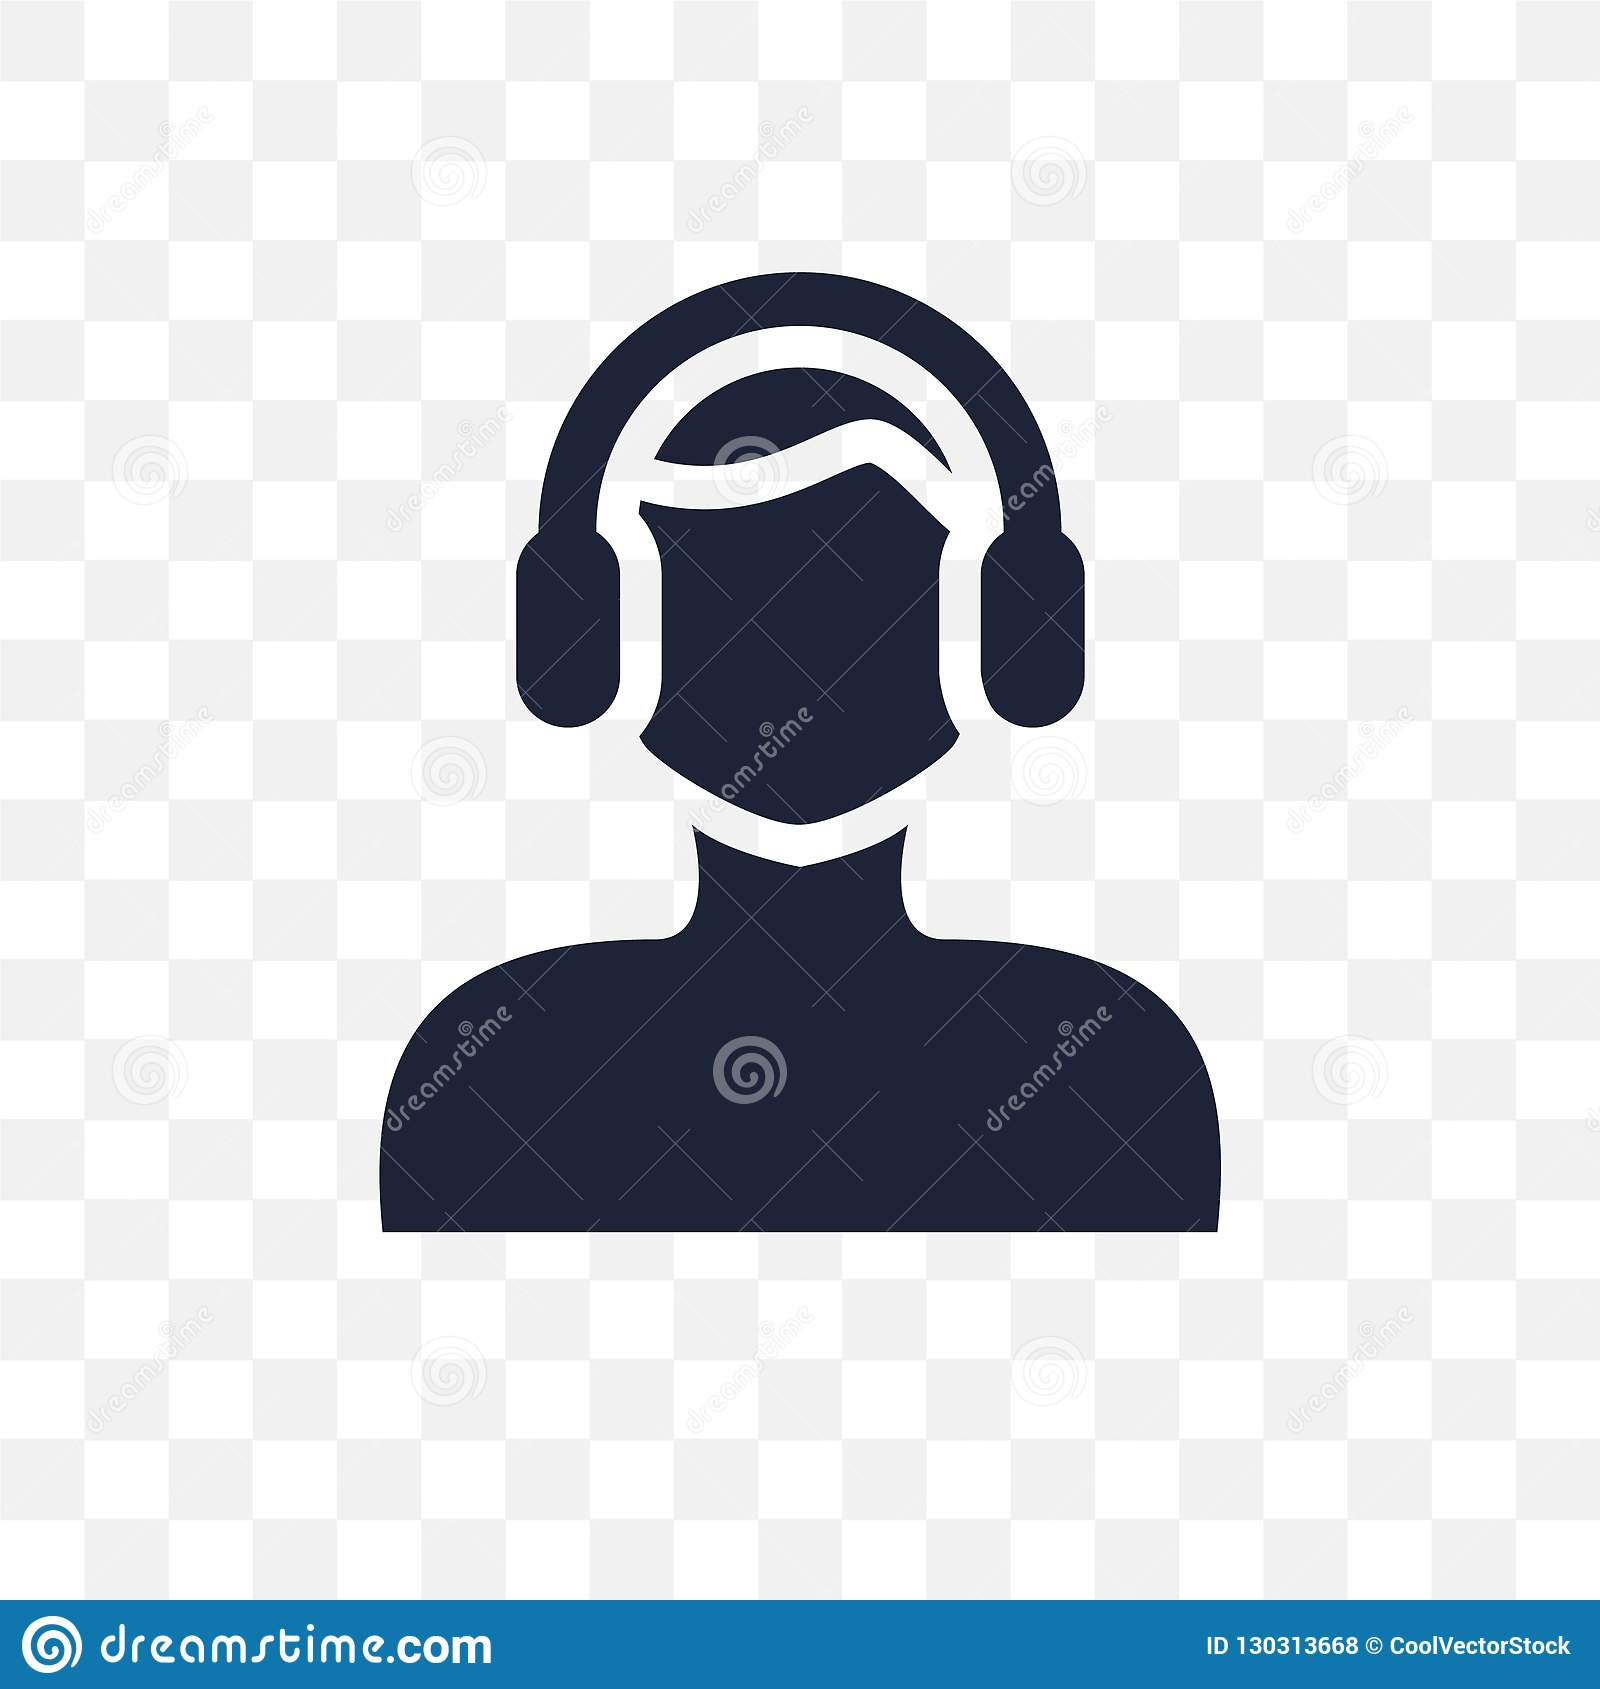 Man face with headphones transparent icon. Man face with headphones symbol design from People collection.